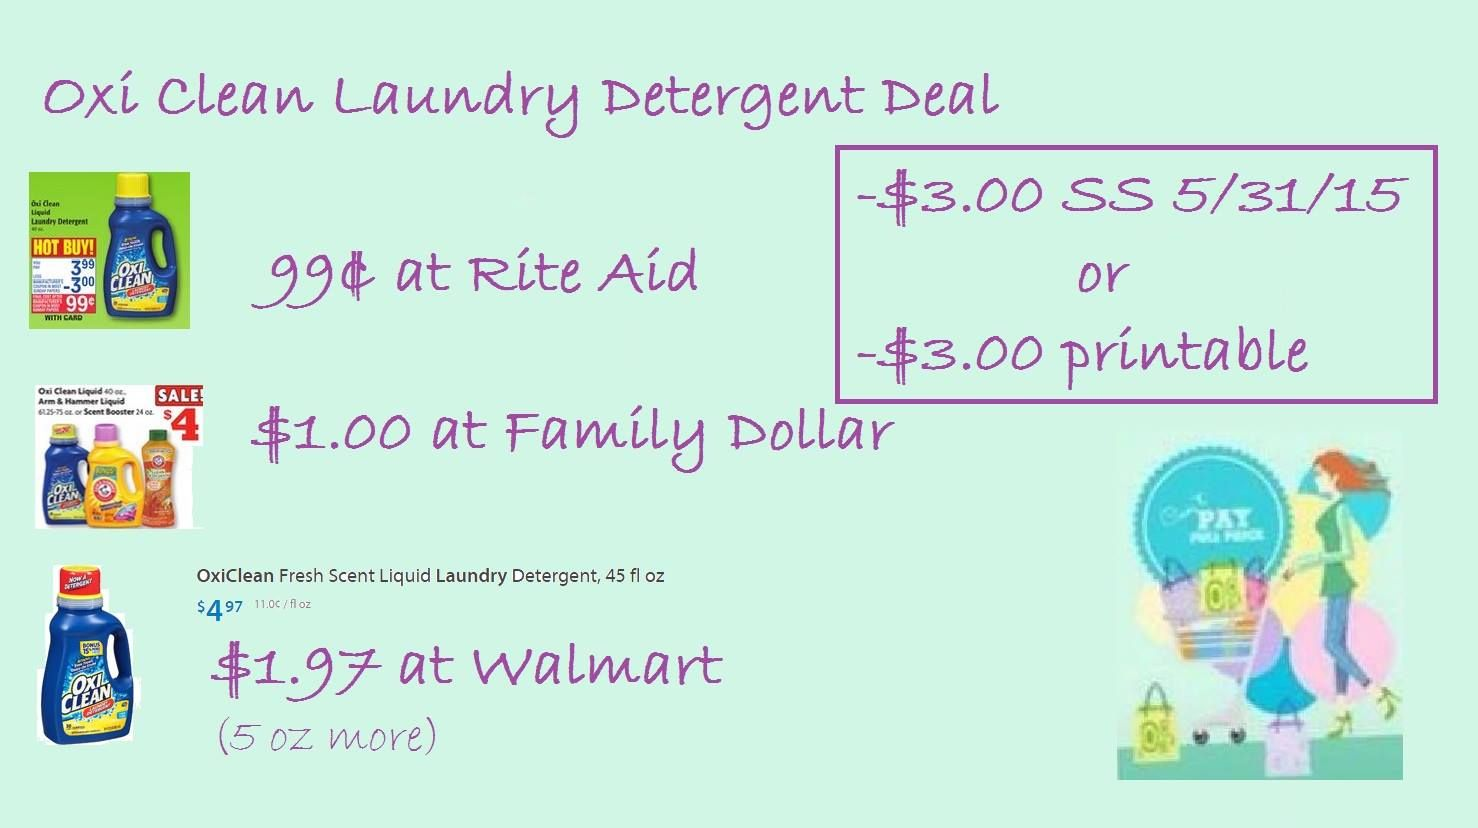 Rite Aid Stock Quote Oxi Clean Laundry Detergent Is A Great Deal This Week $3.00 Q .